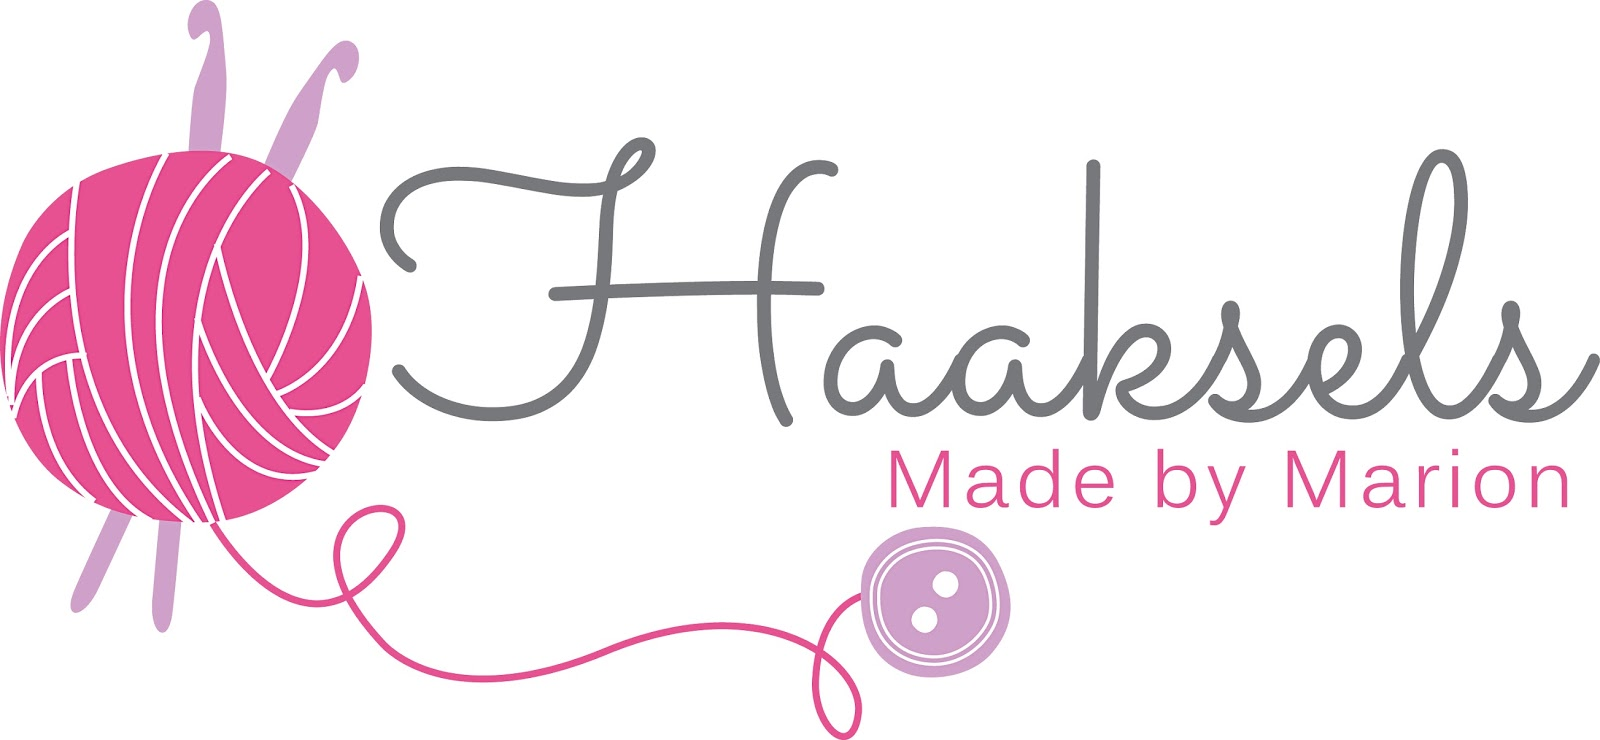 Crochet Logo : Haaksels: Haaktermen vertaald - Crochet terms translated